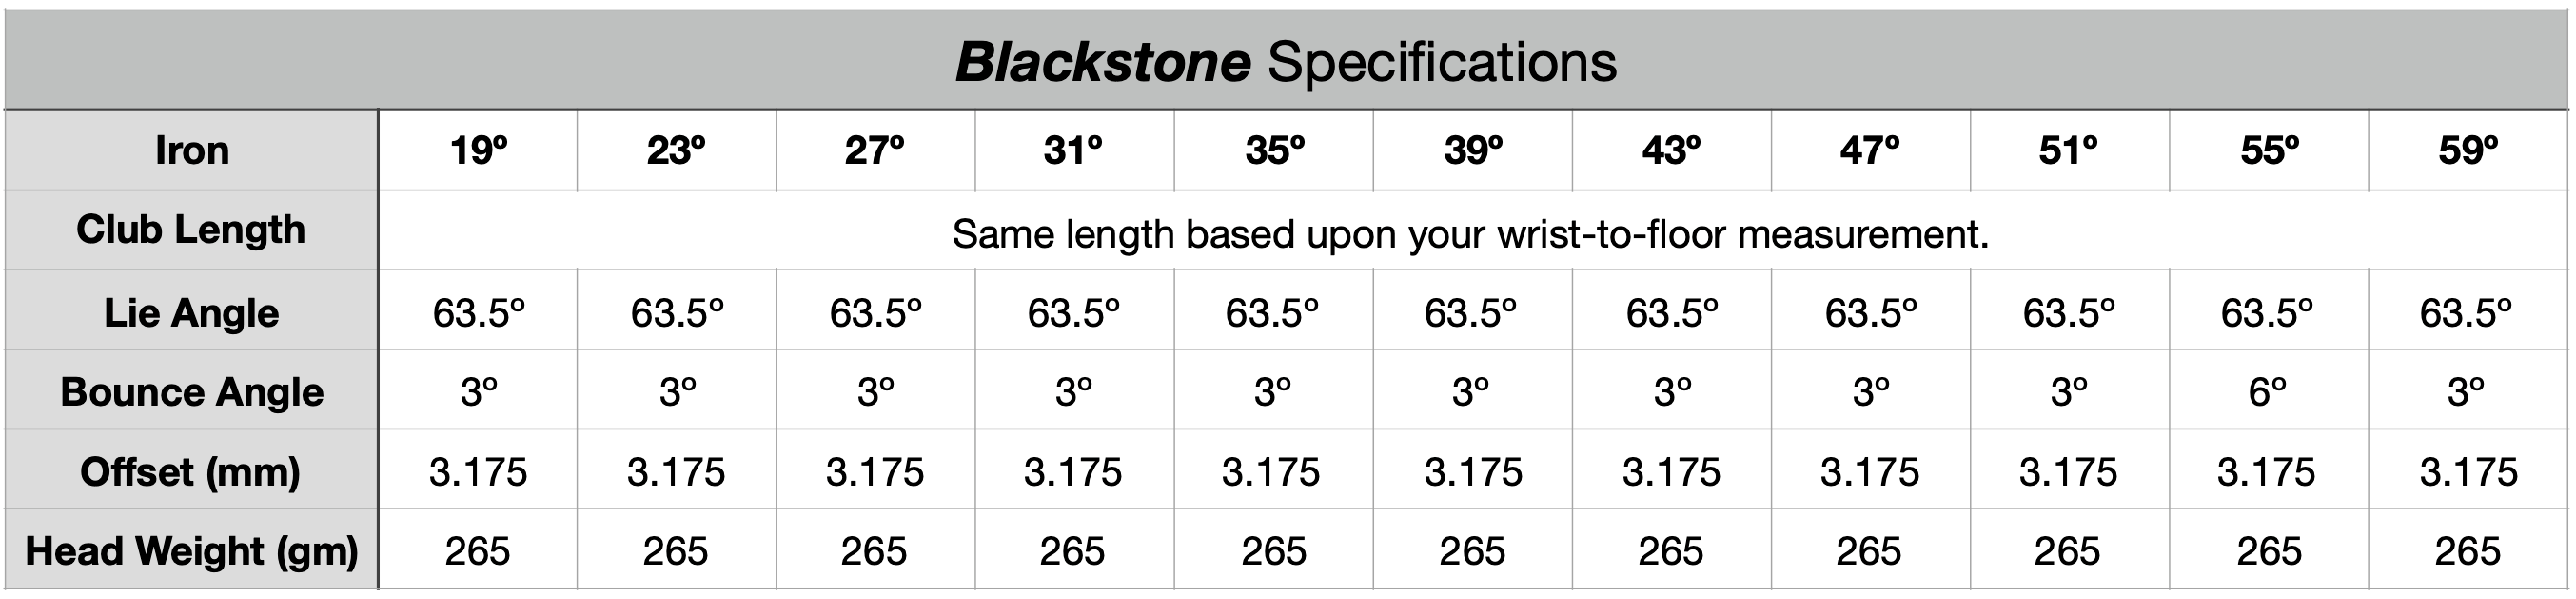 Blackstone Iron Specifications